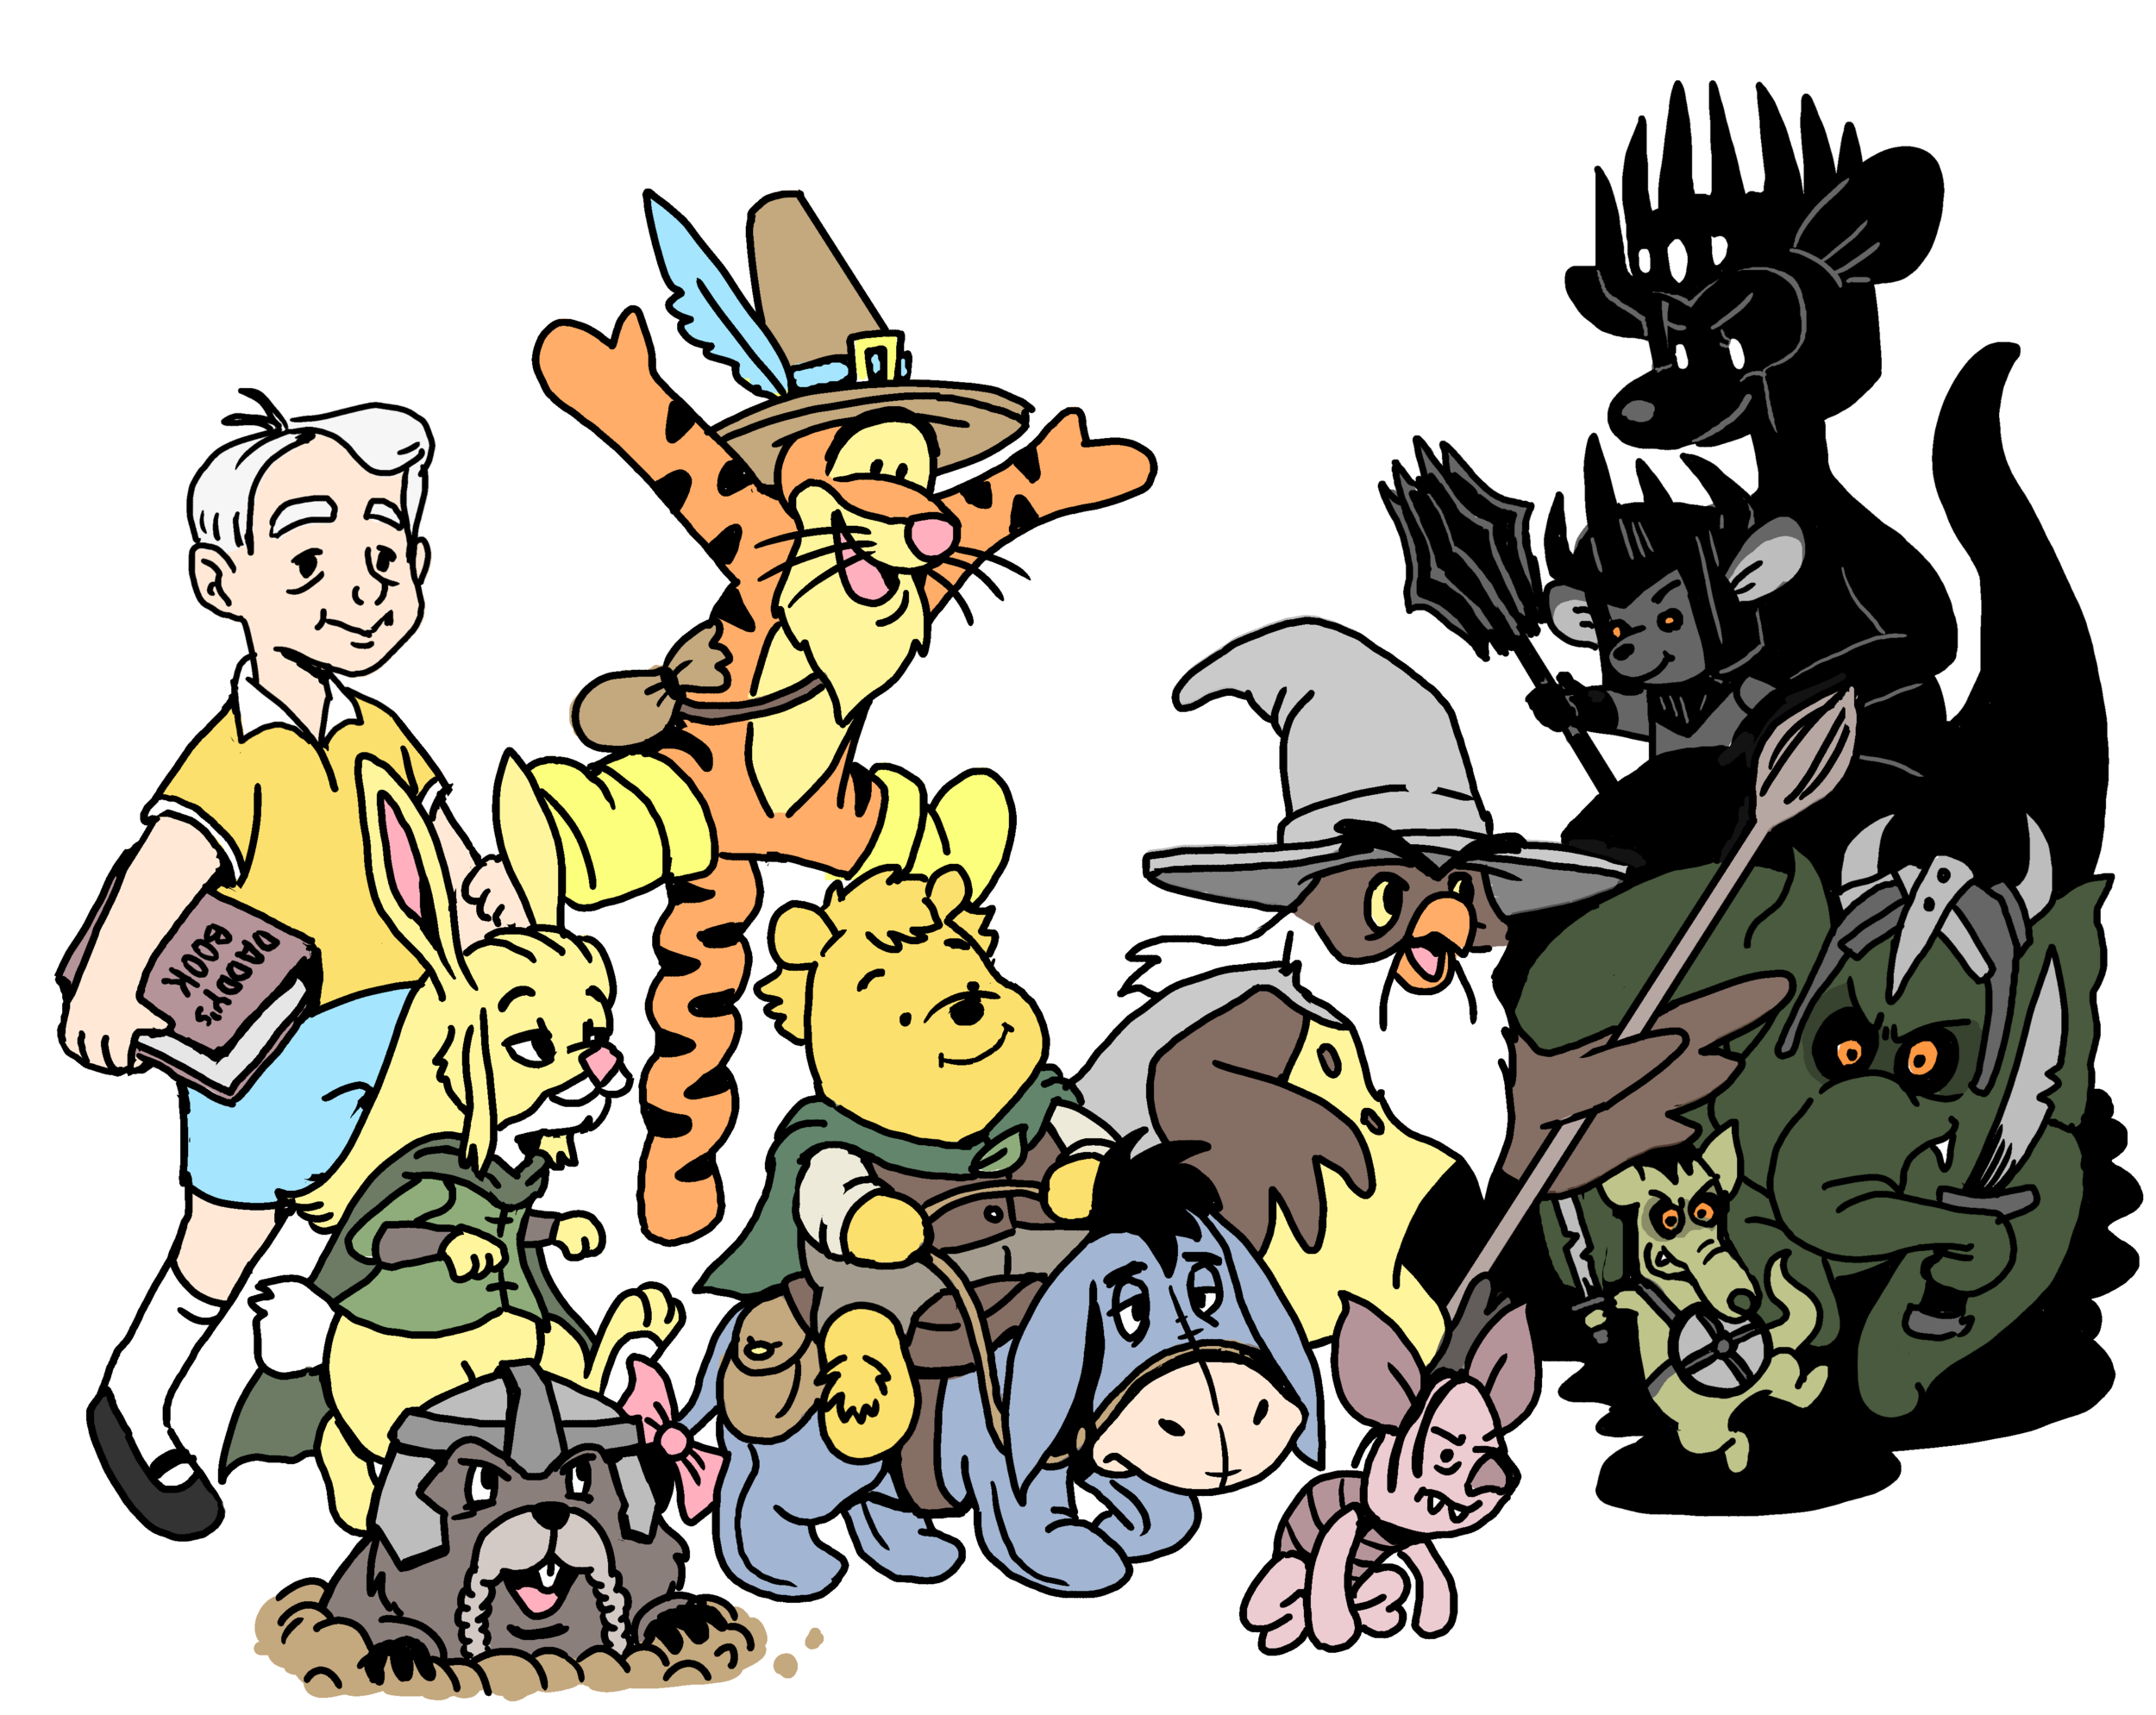 Fellowship of the Pooh